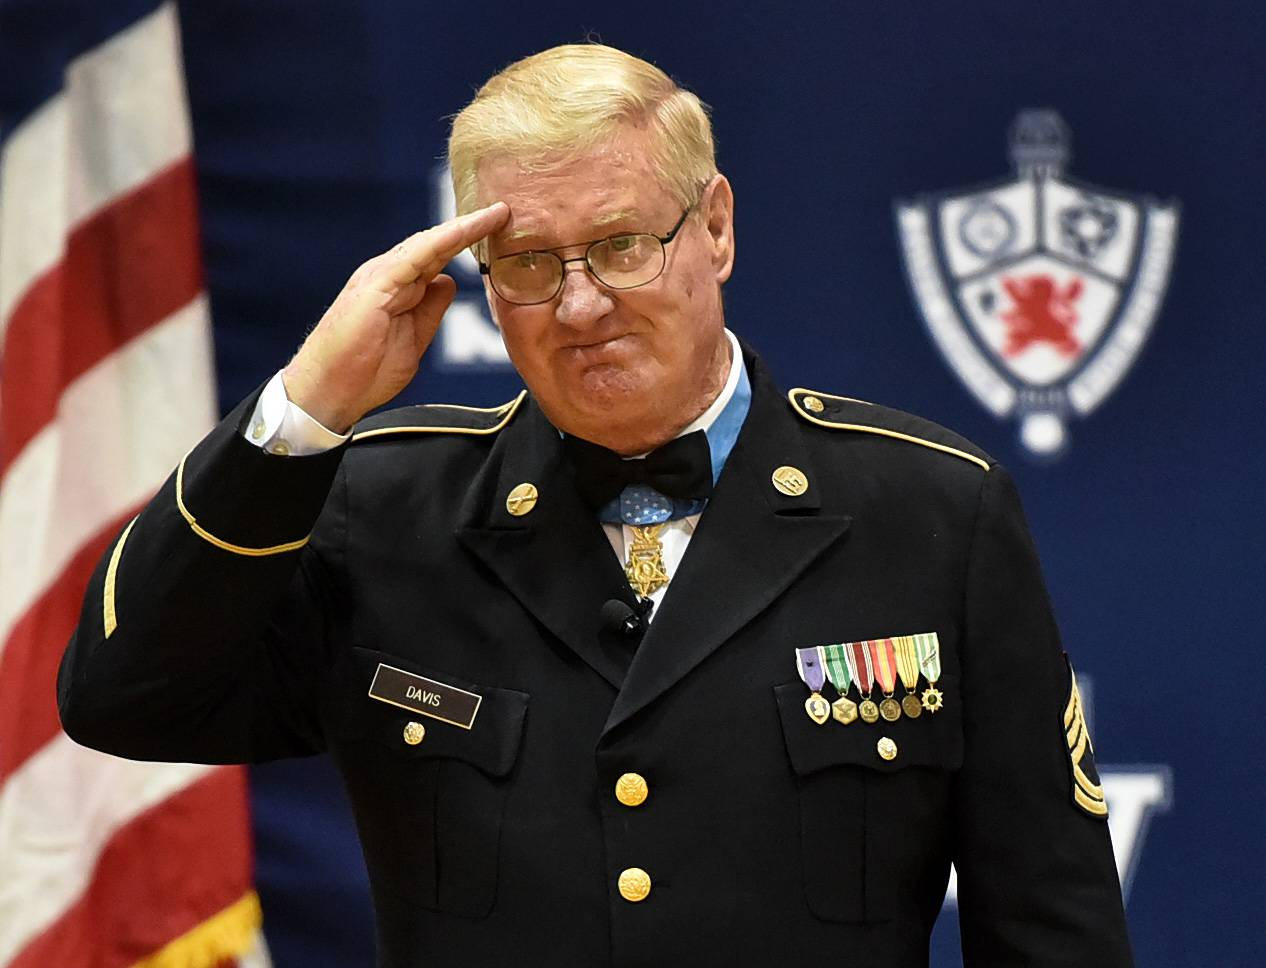 Retired Army Sgt. Sammy L. Davis, known as the real Forrest Gump, salutes the crowd Monday during a visit with students at St. Viator High School in Arlington Heights.